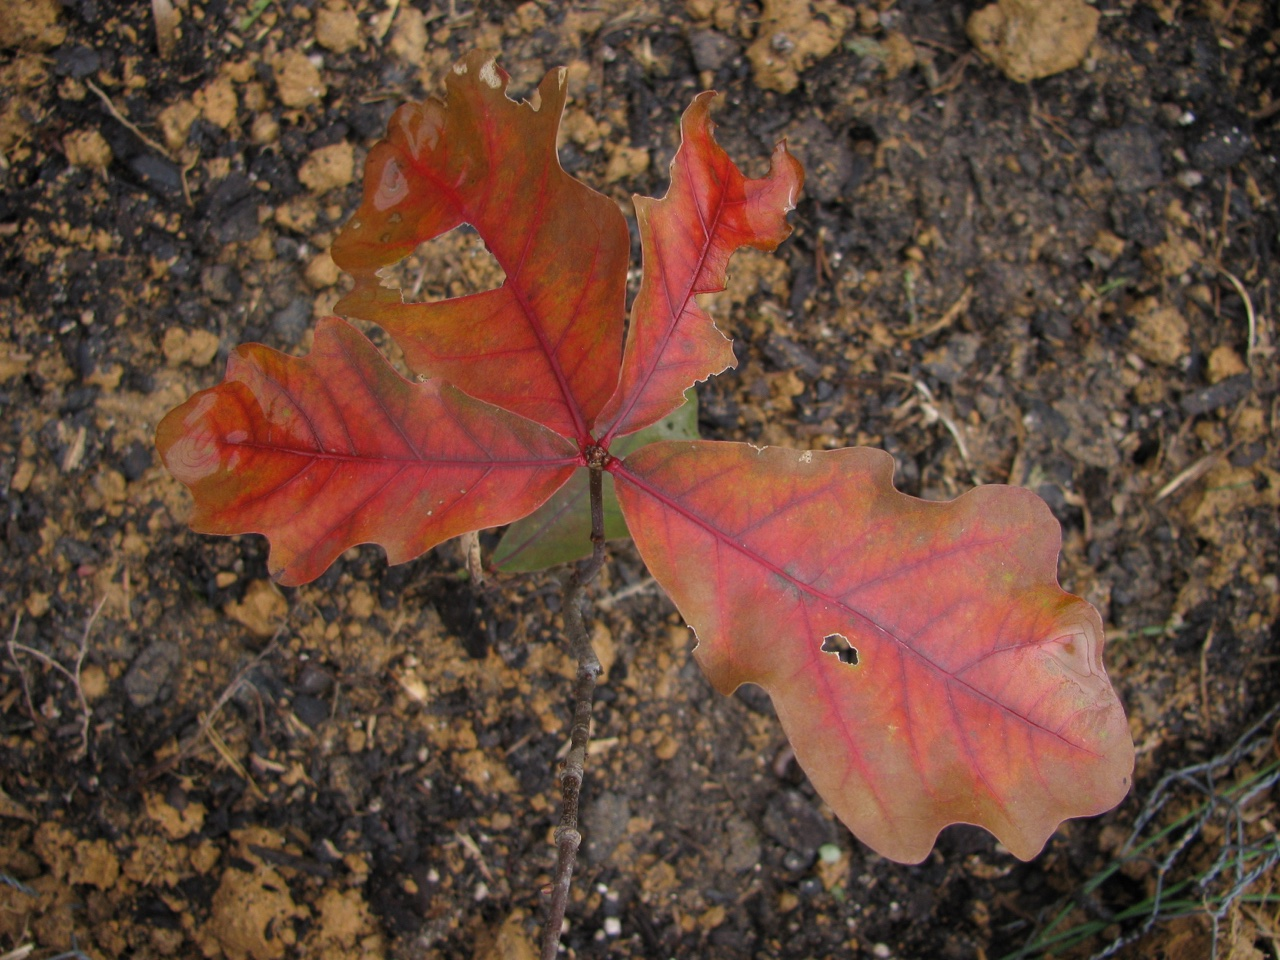 The Scientific Name is Quercus alba. You will likely hear them called White Oak. This picture shows the Beautiful fall color on a young sapling of Quercus alba